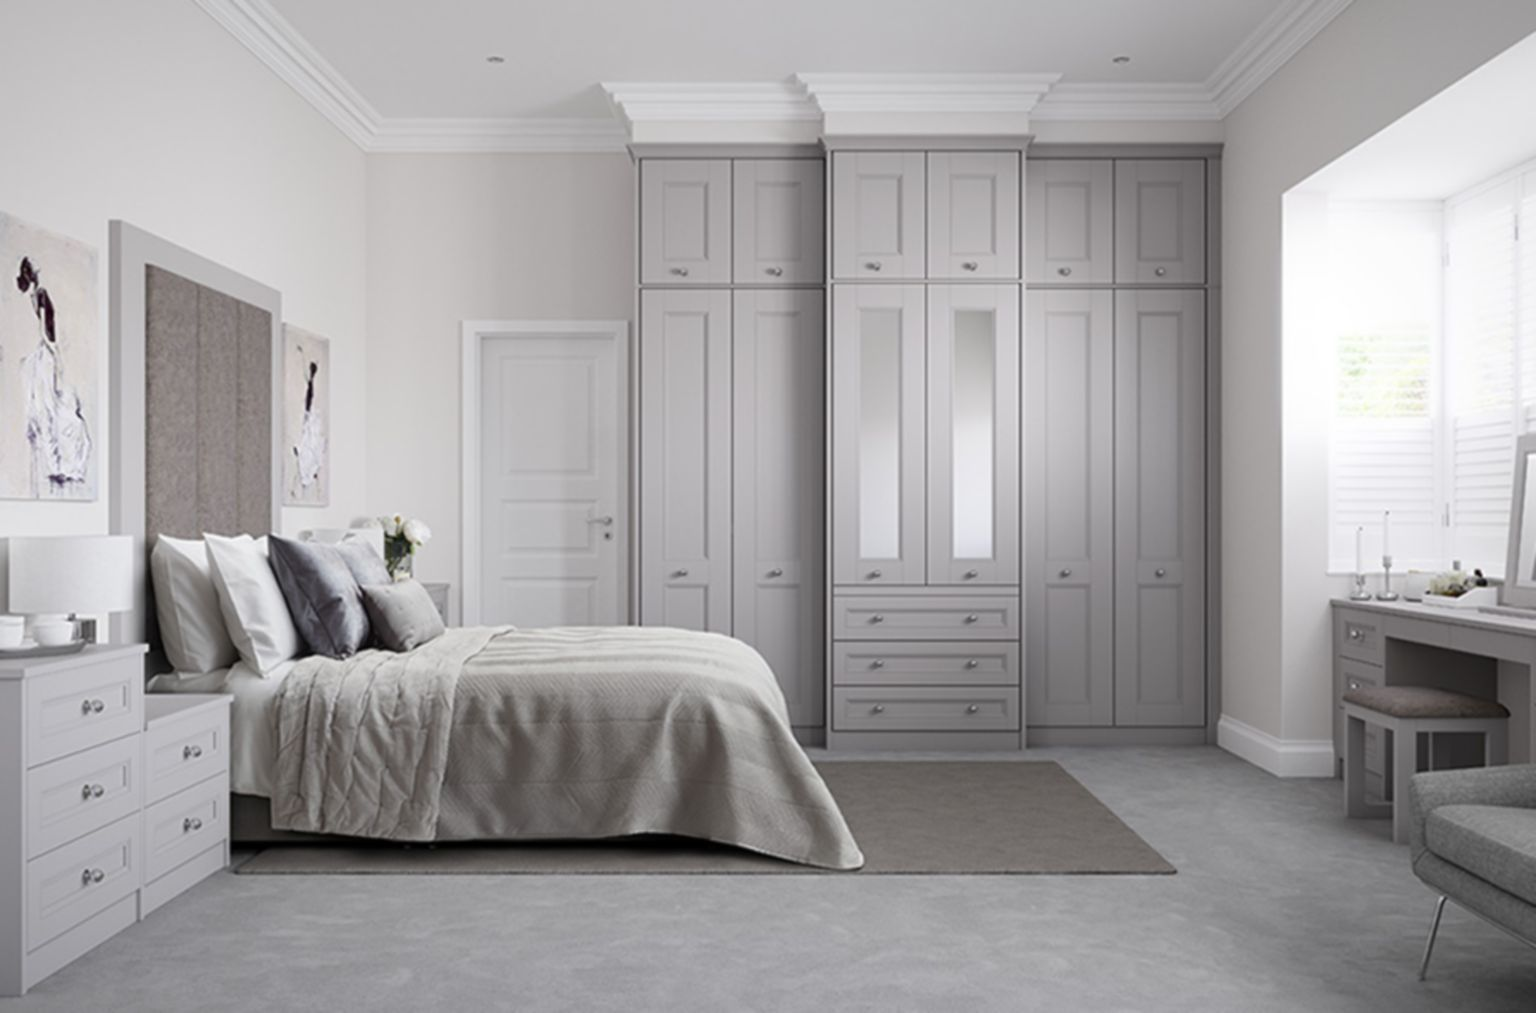 Ashbourne fitted bedroom | Fitted bedrooms, Bedroom ...